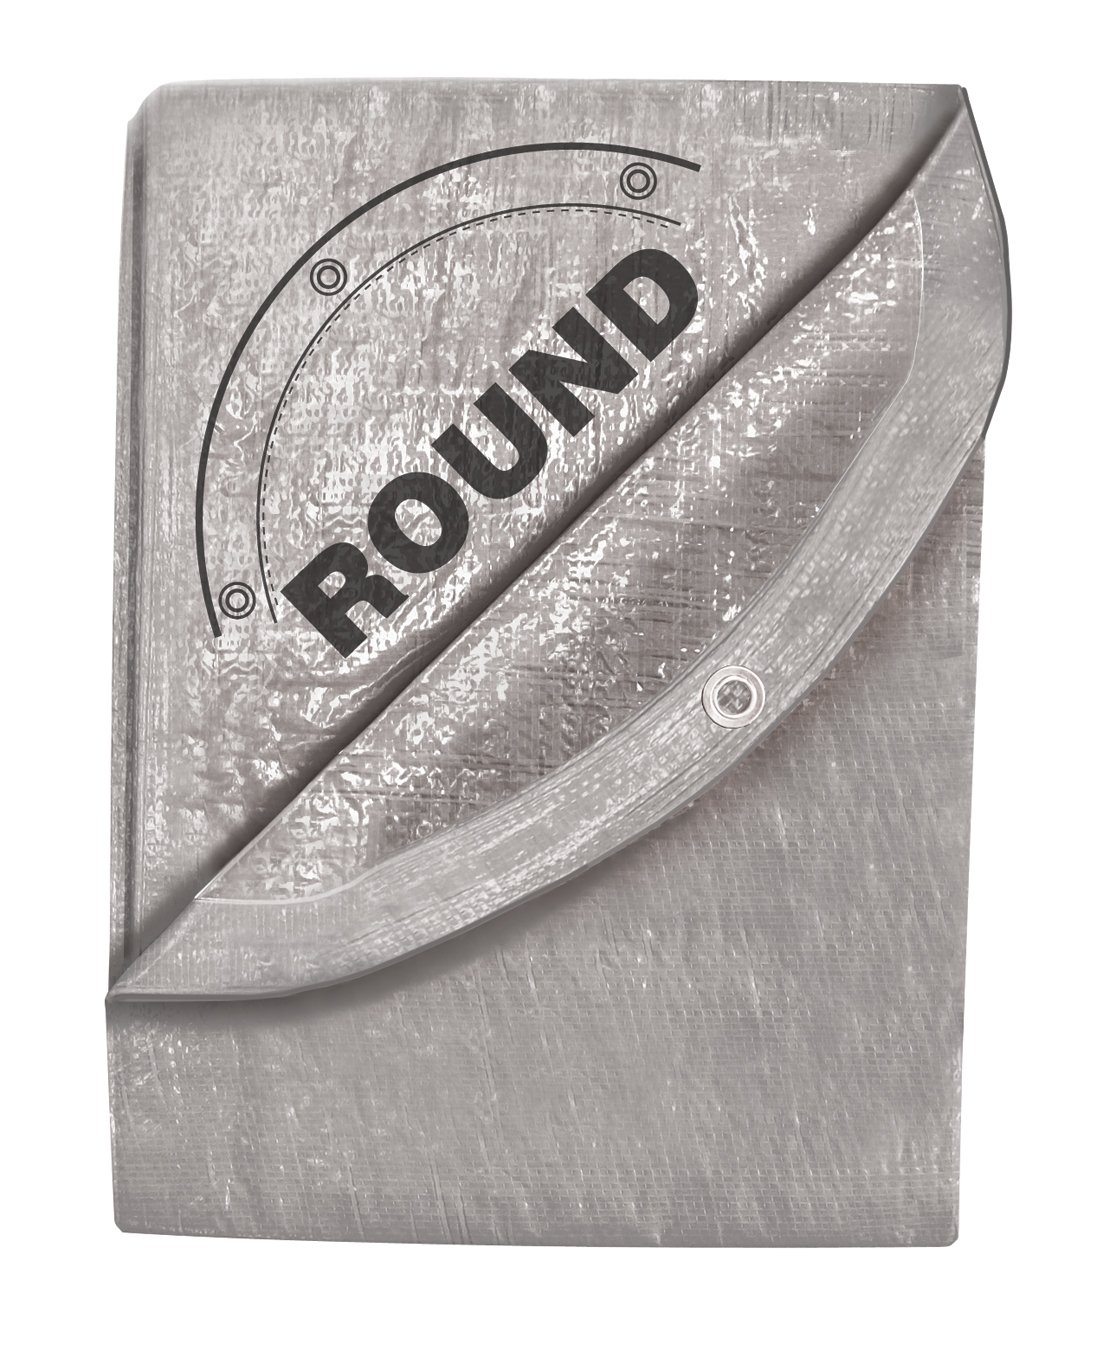 29-Foot by 29-Foot Silver Tarp, Round